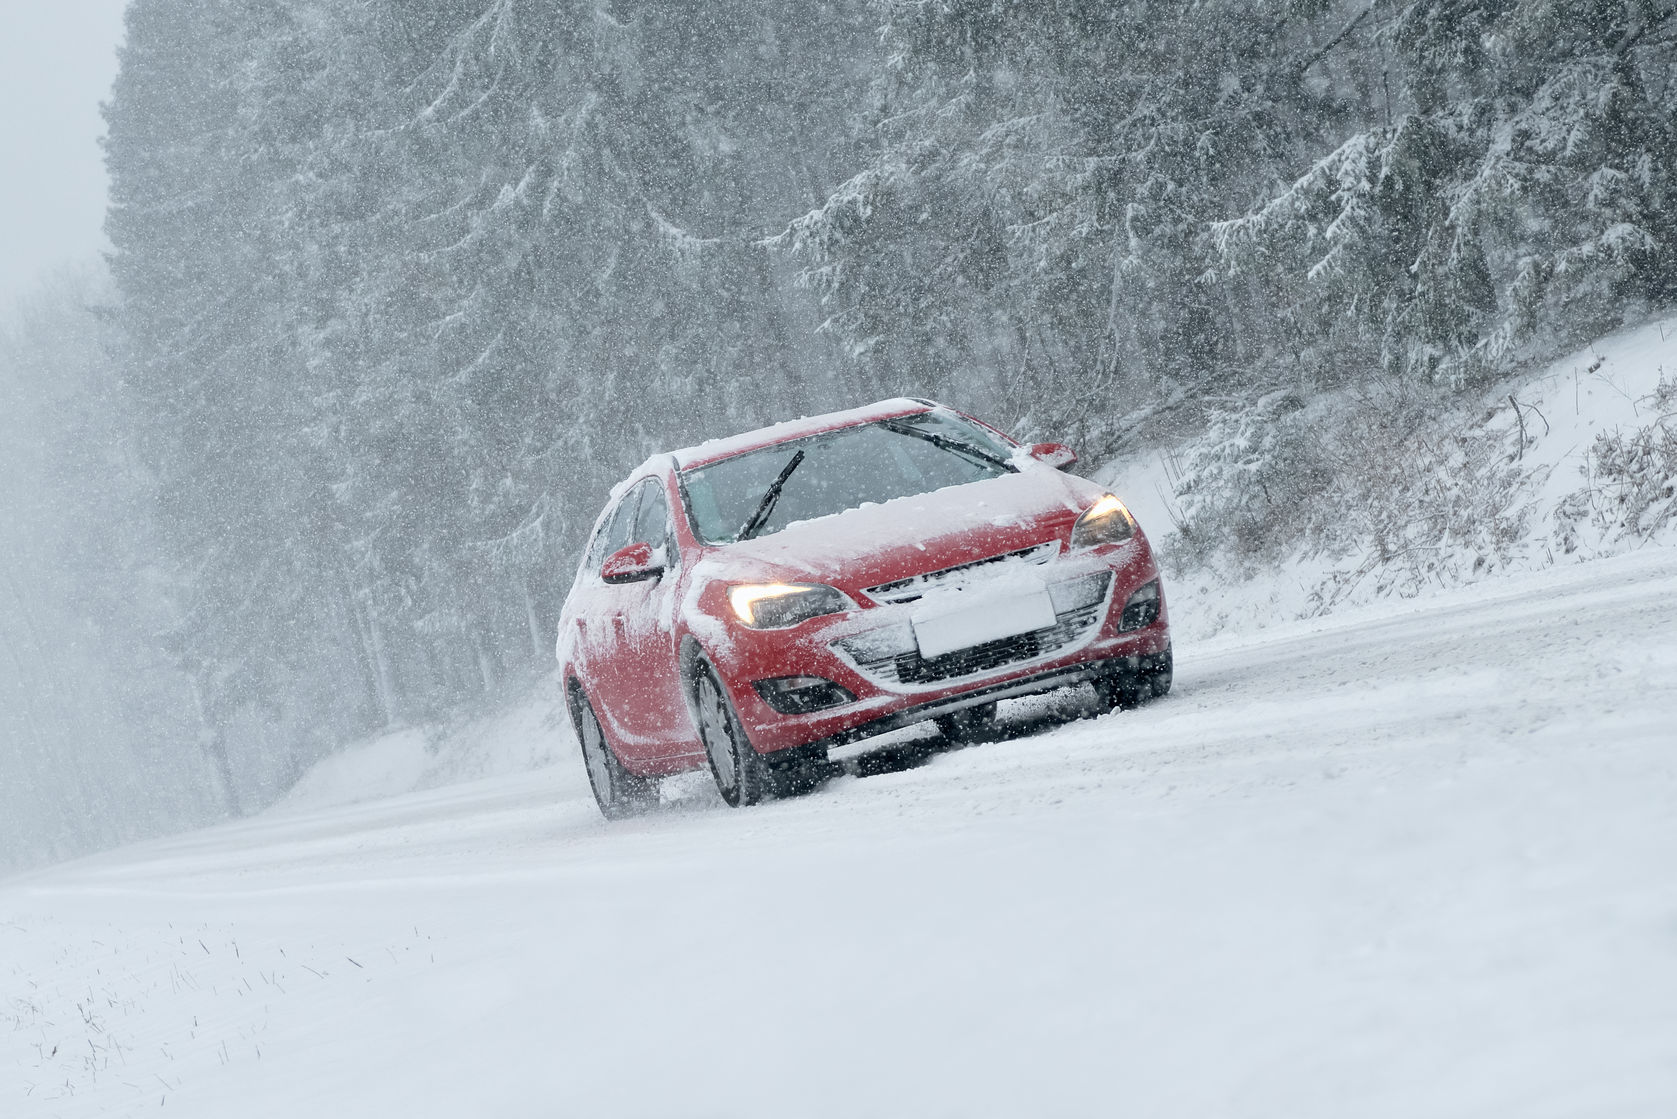 47381524 - winter driving - risk of snow and ice